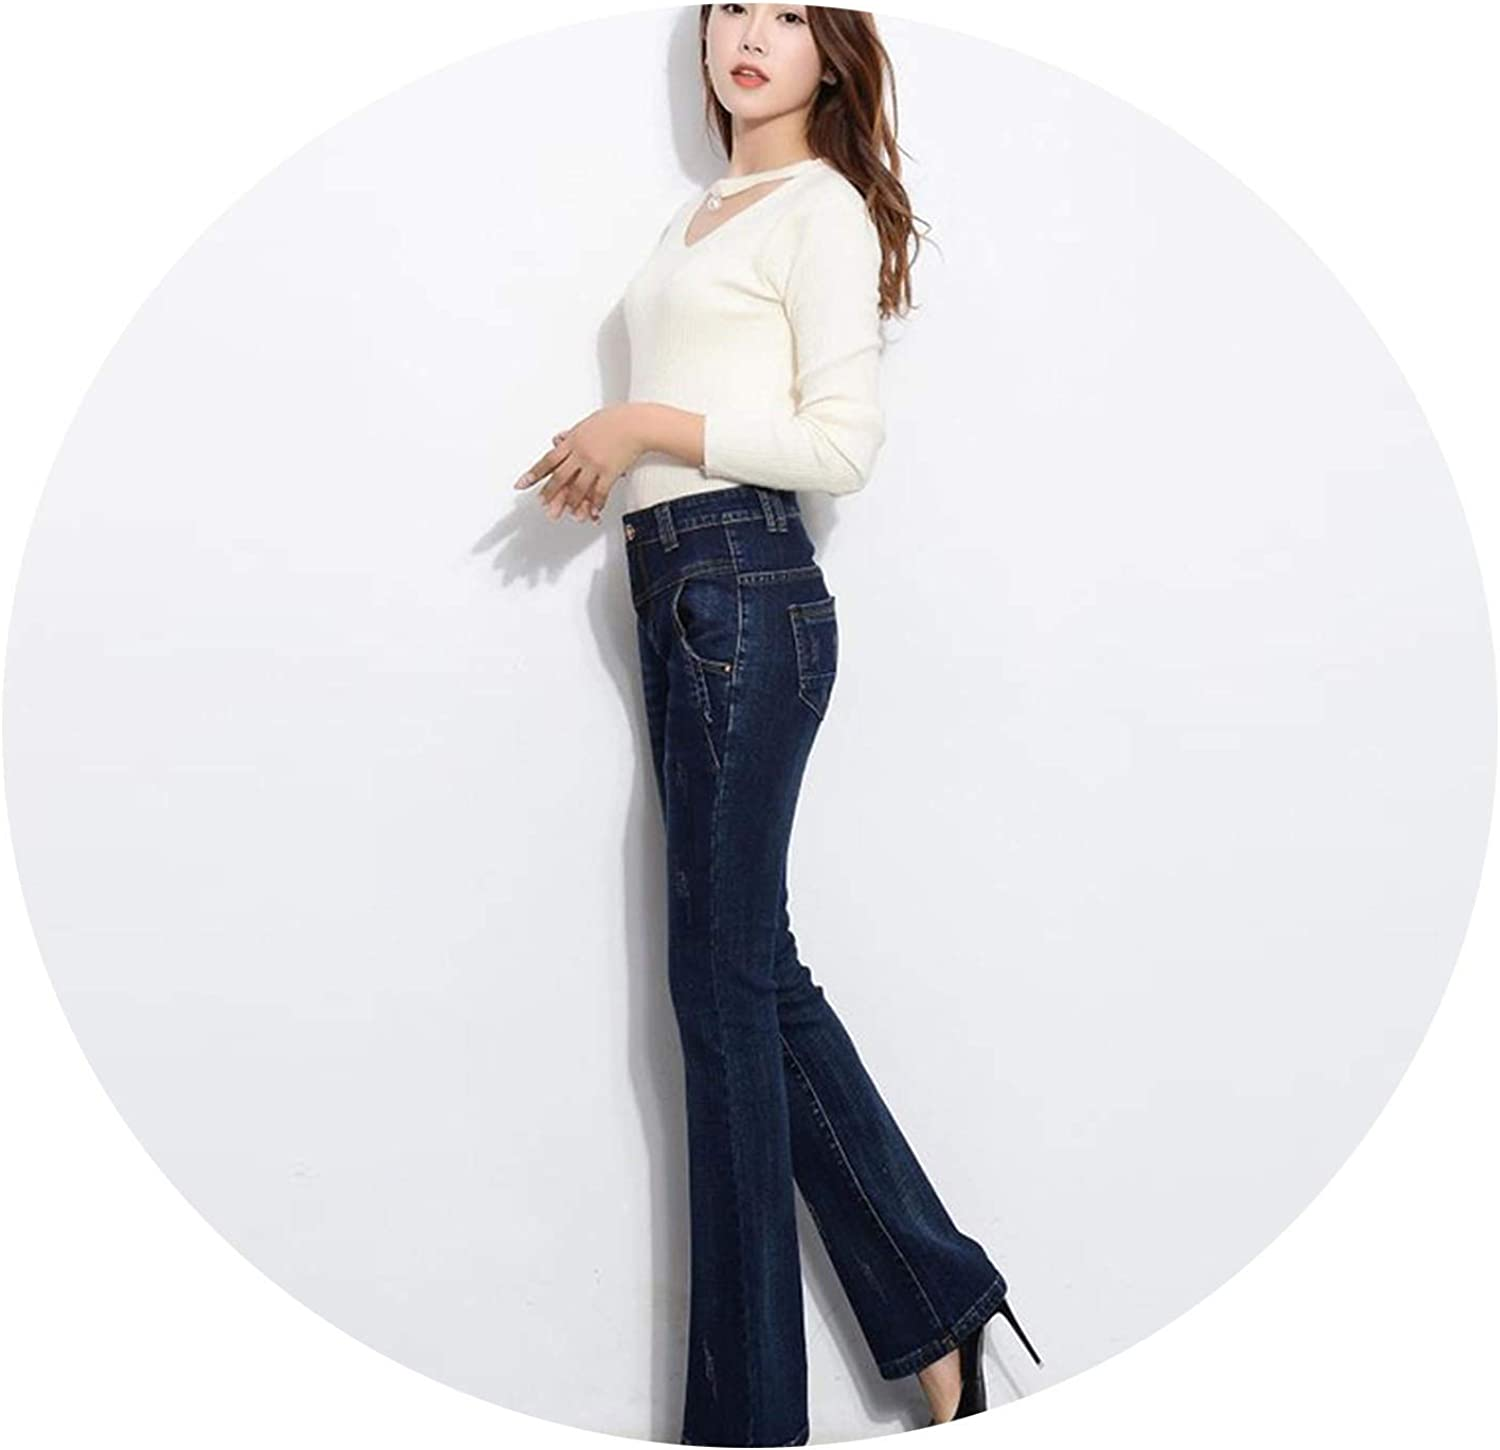 blueeshore Women Vintage Washed Denim Wide Leg Pants Plus Large Size Boot Cut Flare Jeans for Female